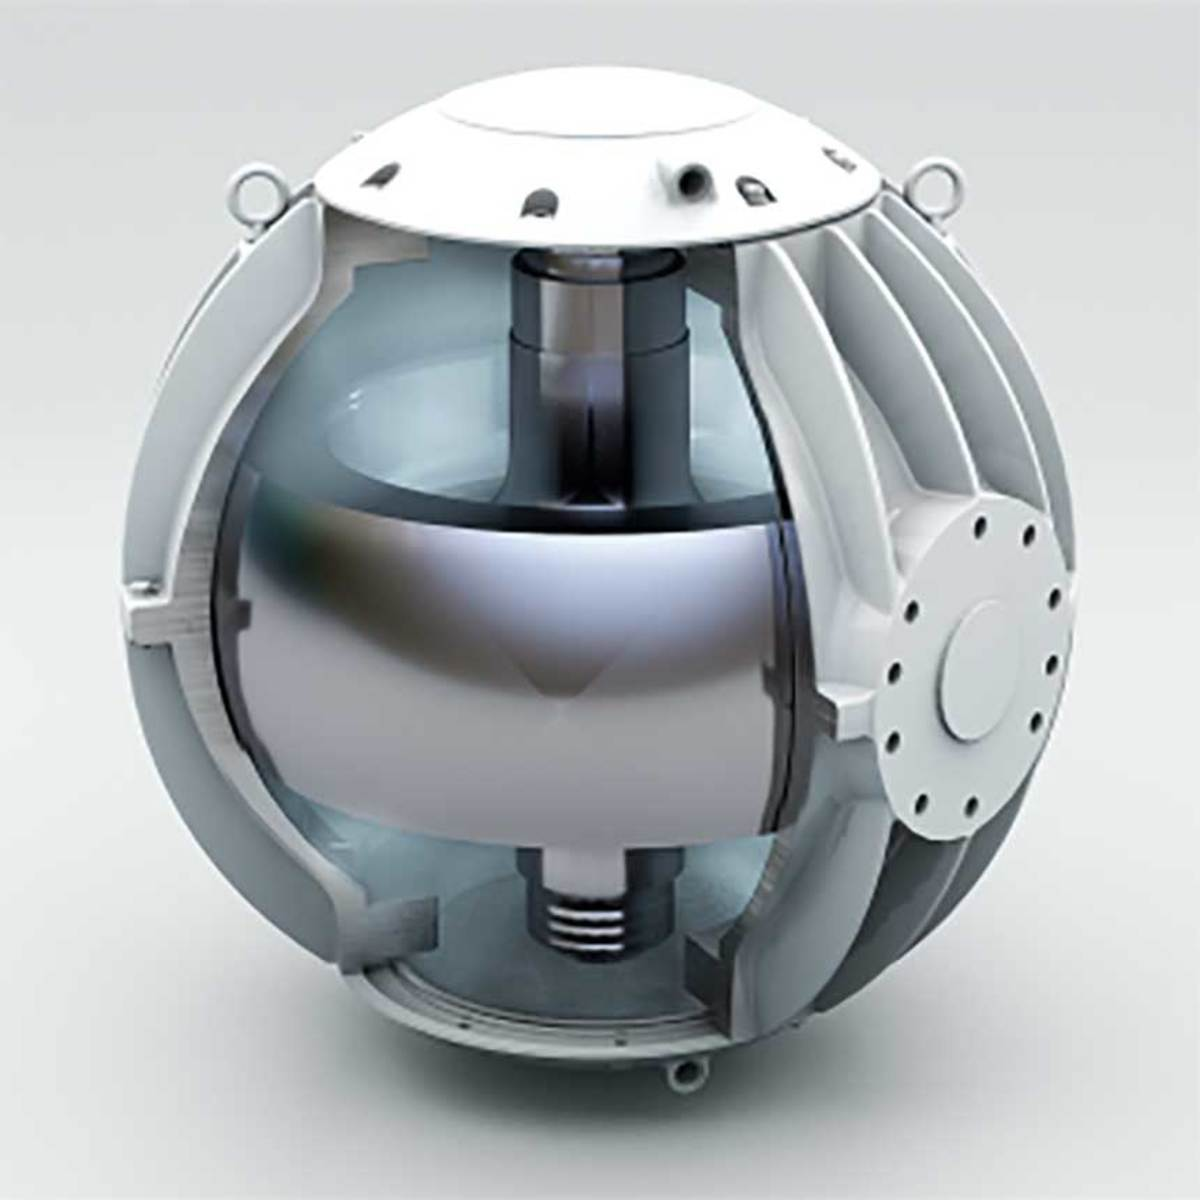 Three-dimensional rendering of the gyro mechanism inside a Seakeeper stabilizer.